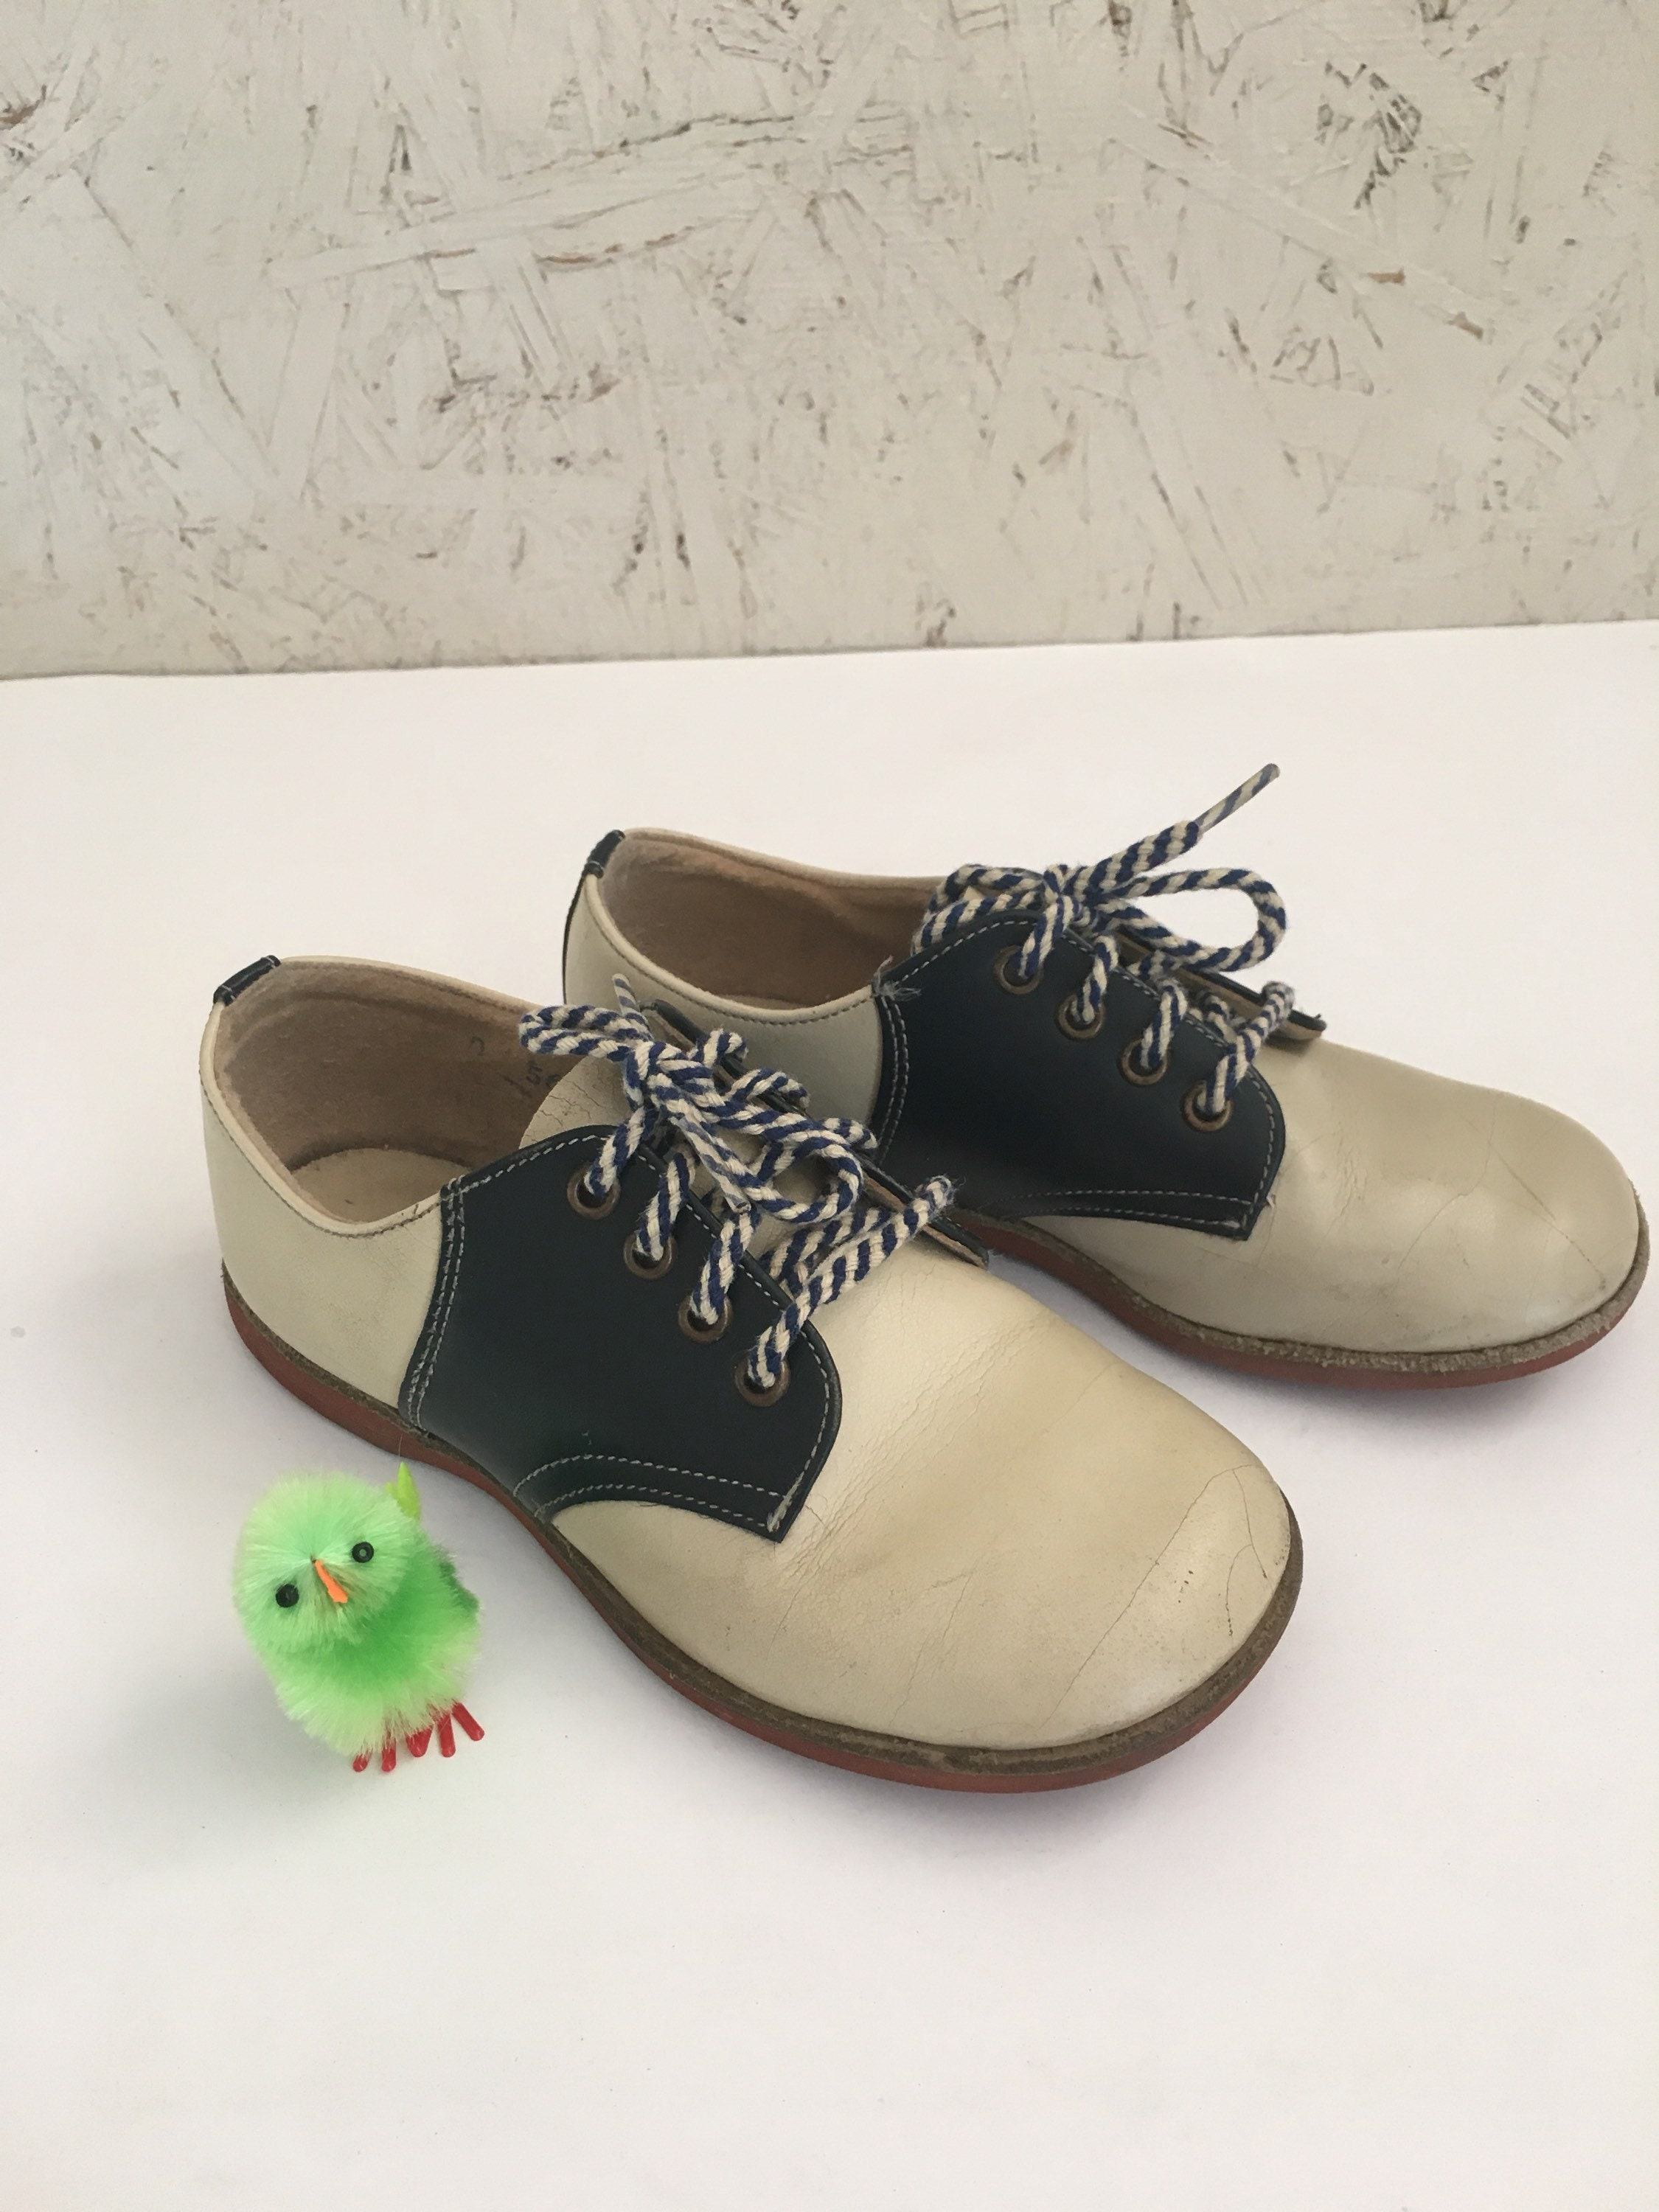 29aacc8a8b5c1 Vintage 60s 70s Kids Saddle Oxford Shoes Size 8-9 Toddler